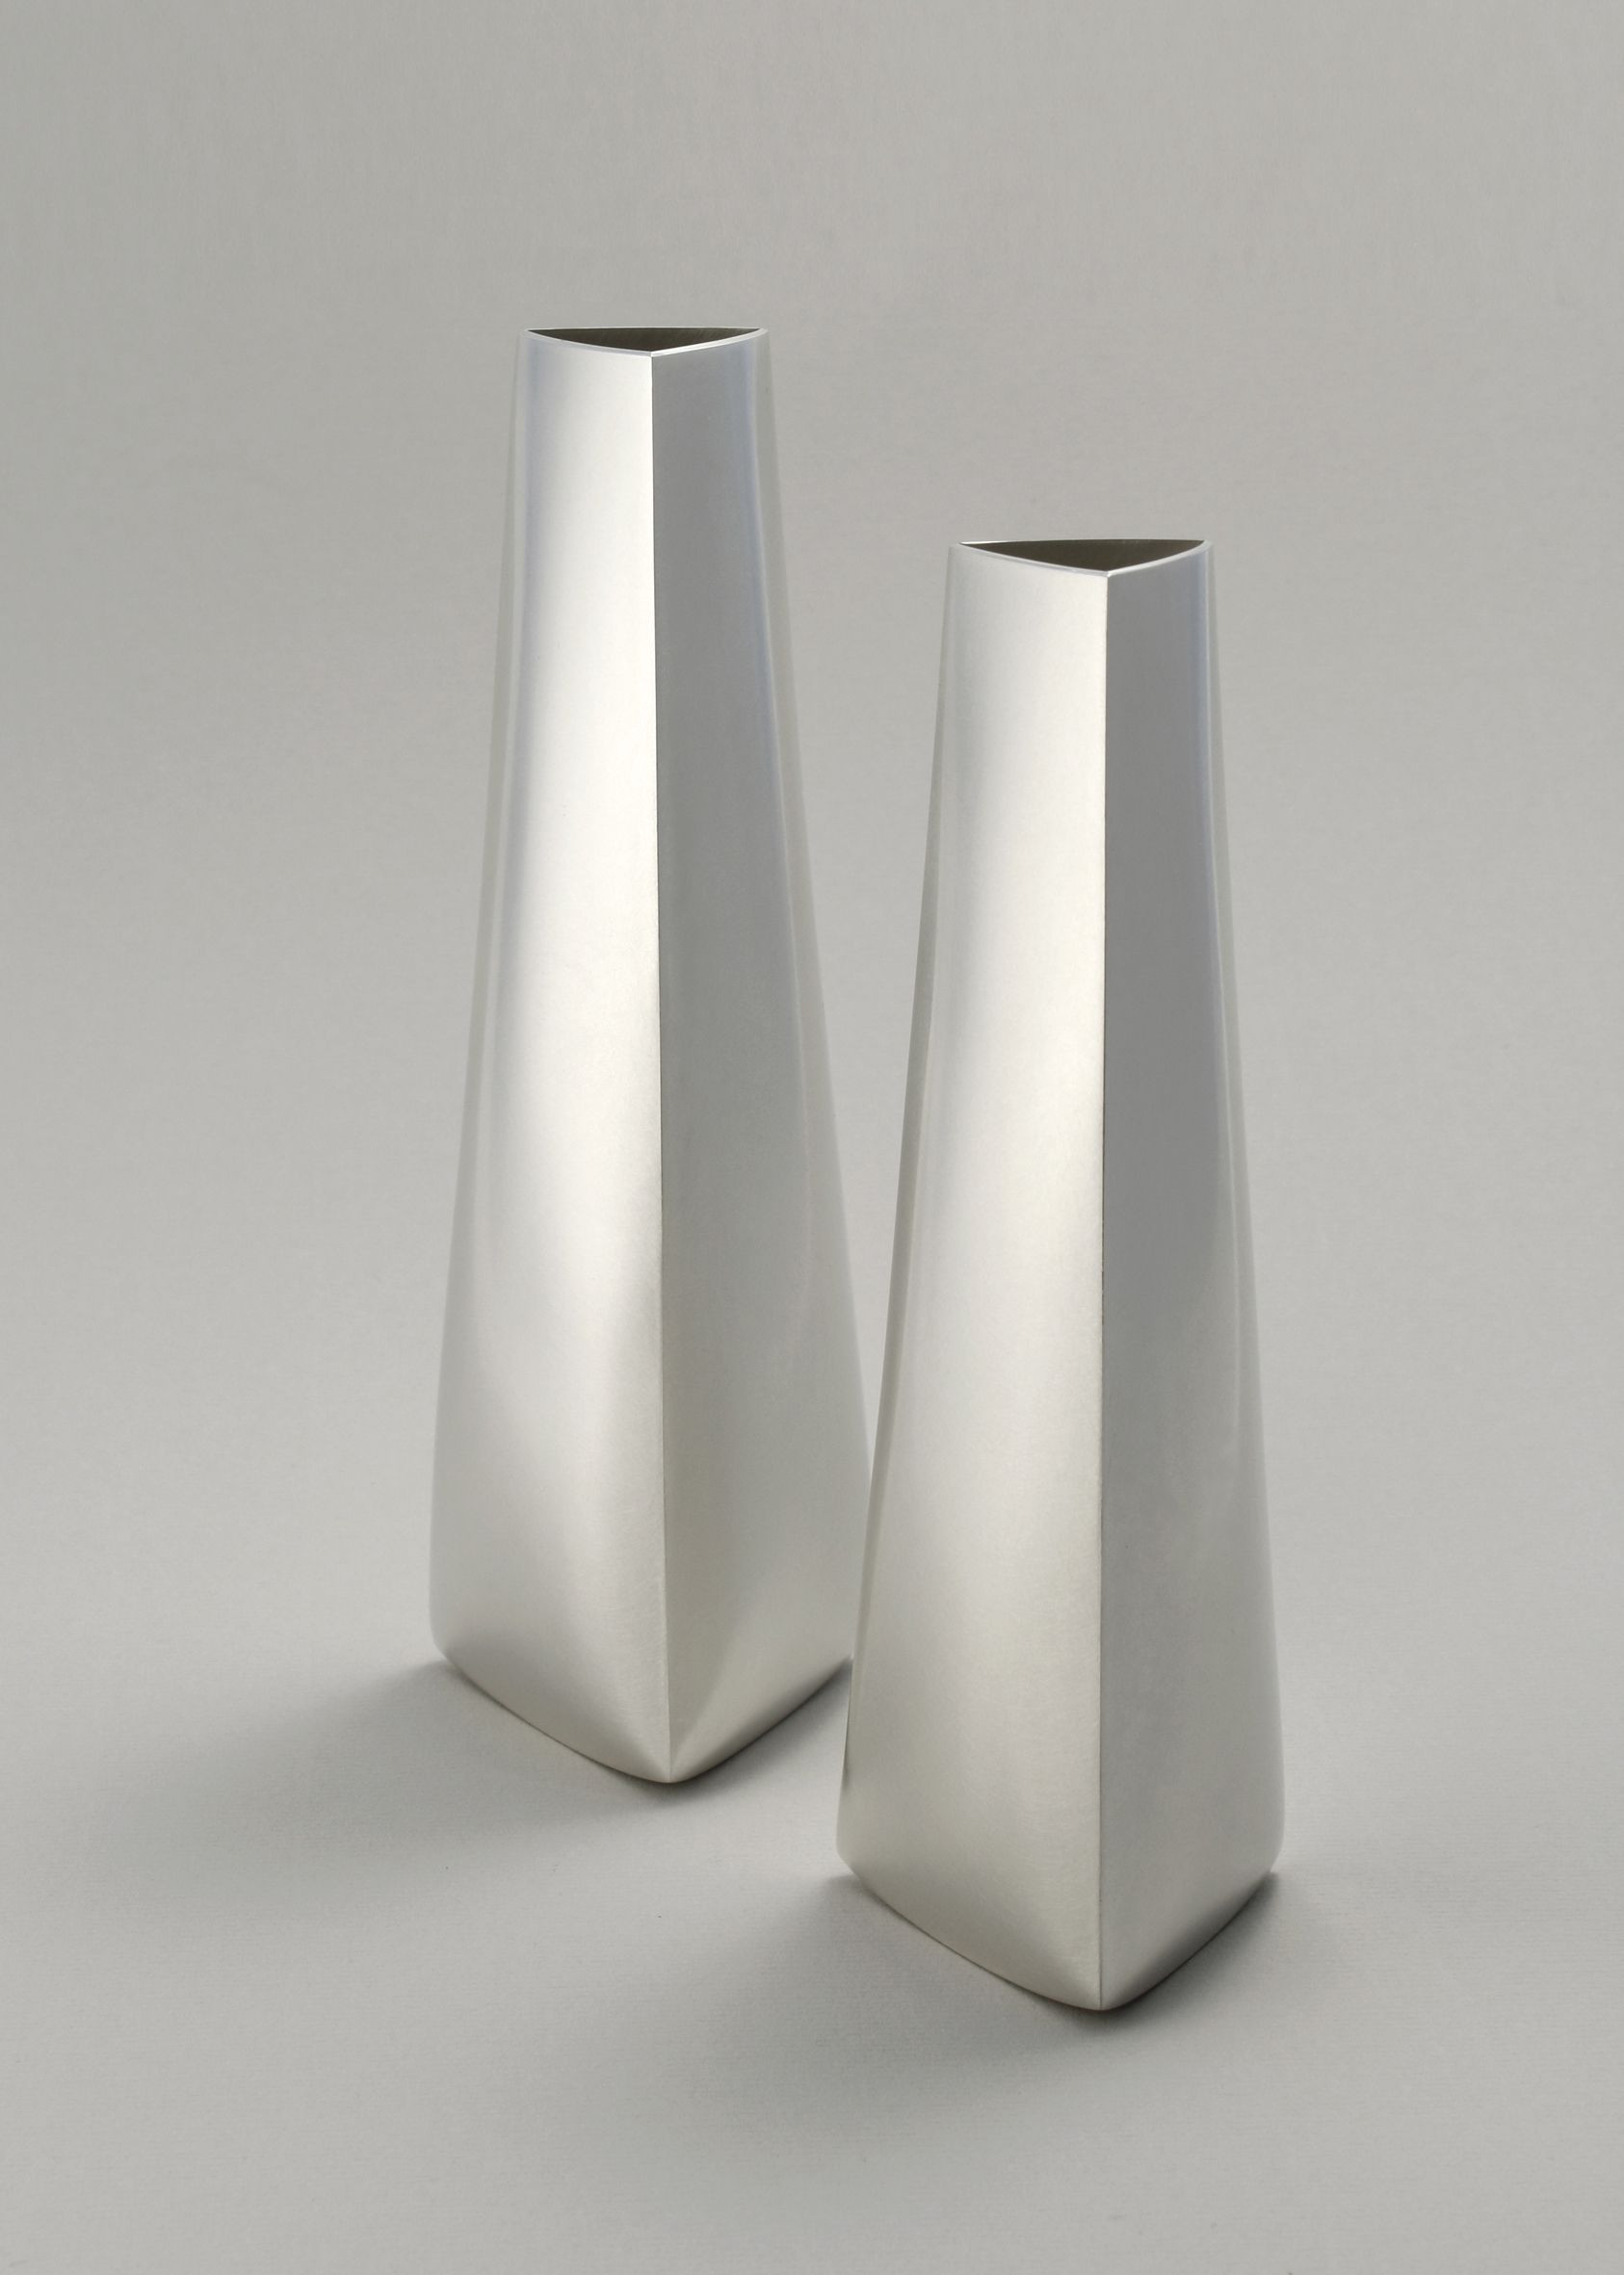 20 Fashionable Tall Stainless Steel Vase 2021 free download tall stainless steel vase of angela cork equilateral vases v ec285 s ic29e s wood metal with angela cork equilateral vases